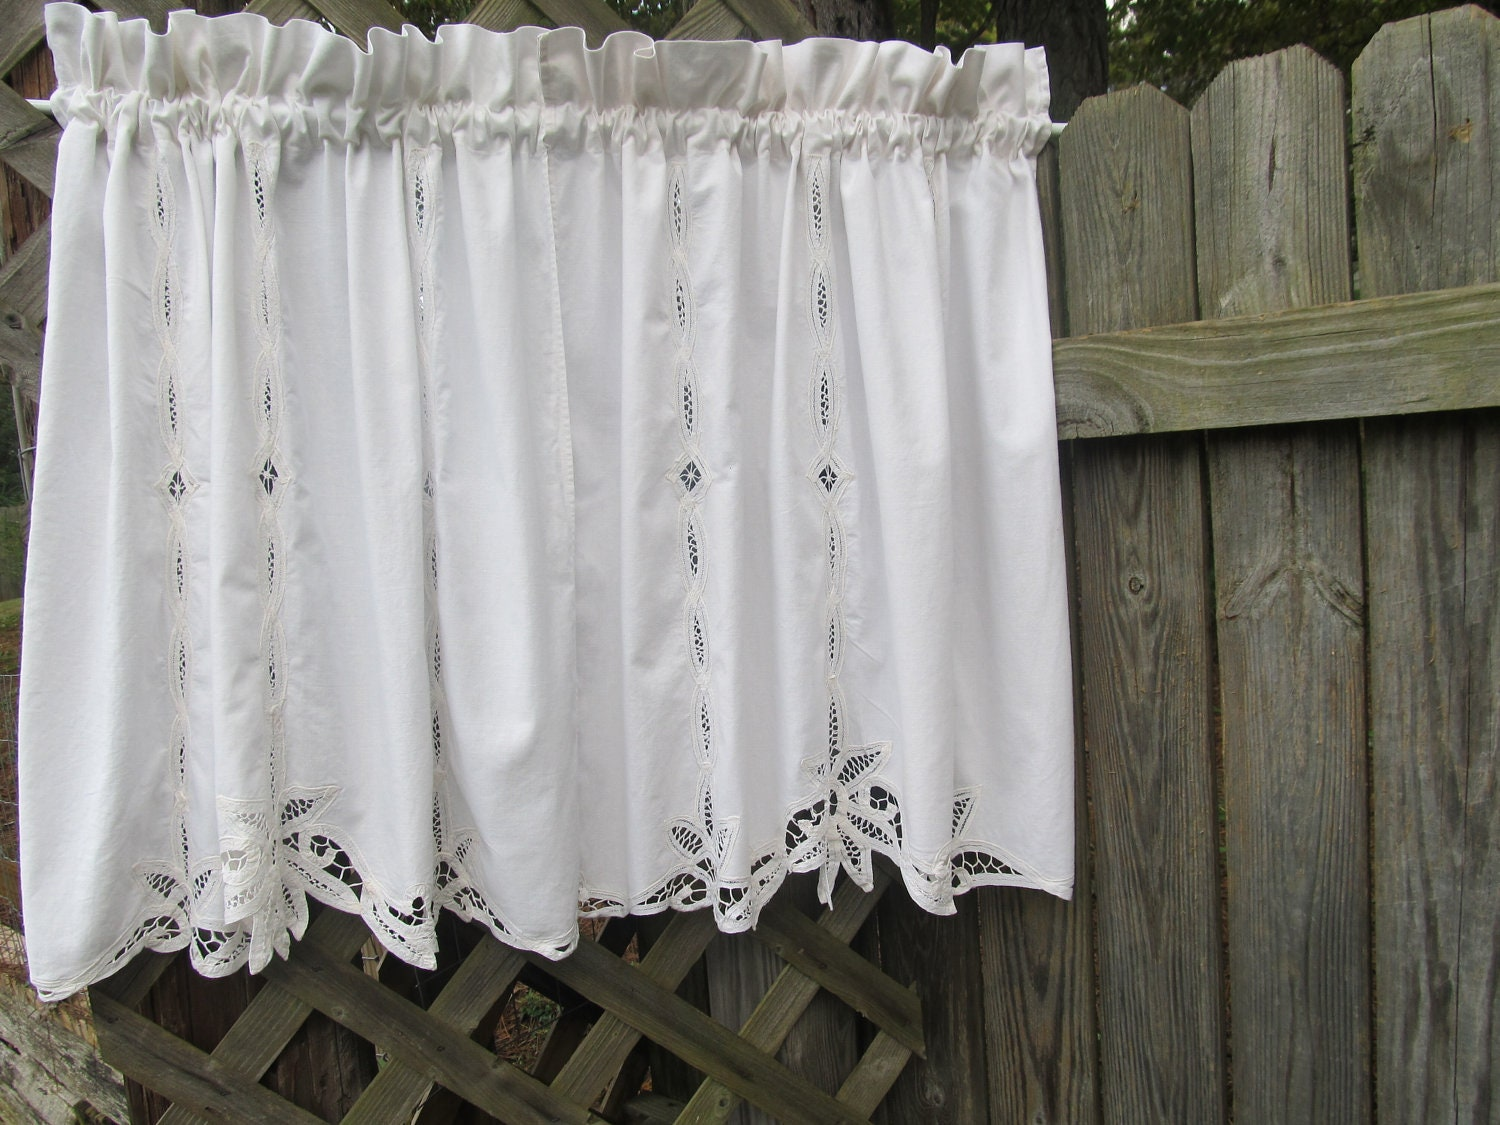 Battenburg lace country window curtain valances for kitchen or bath